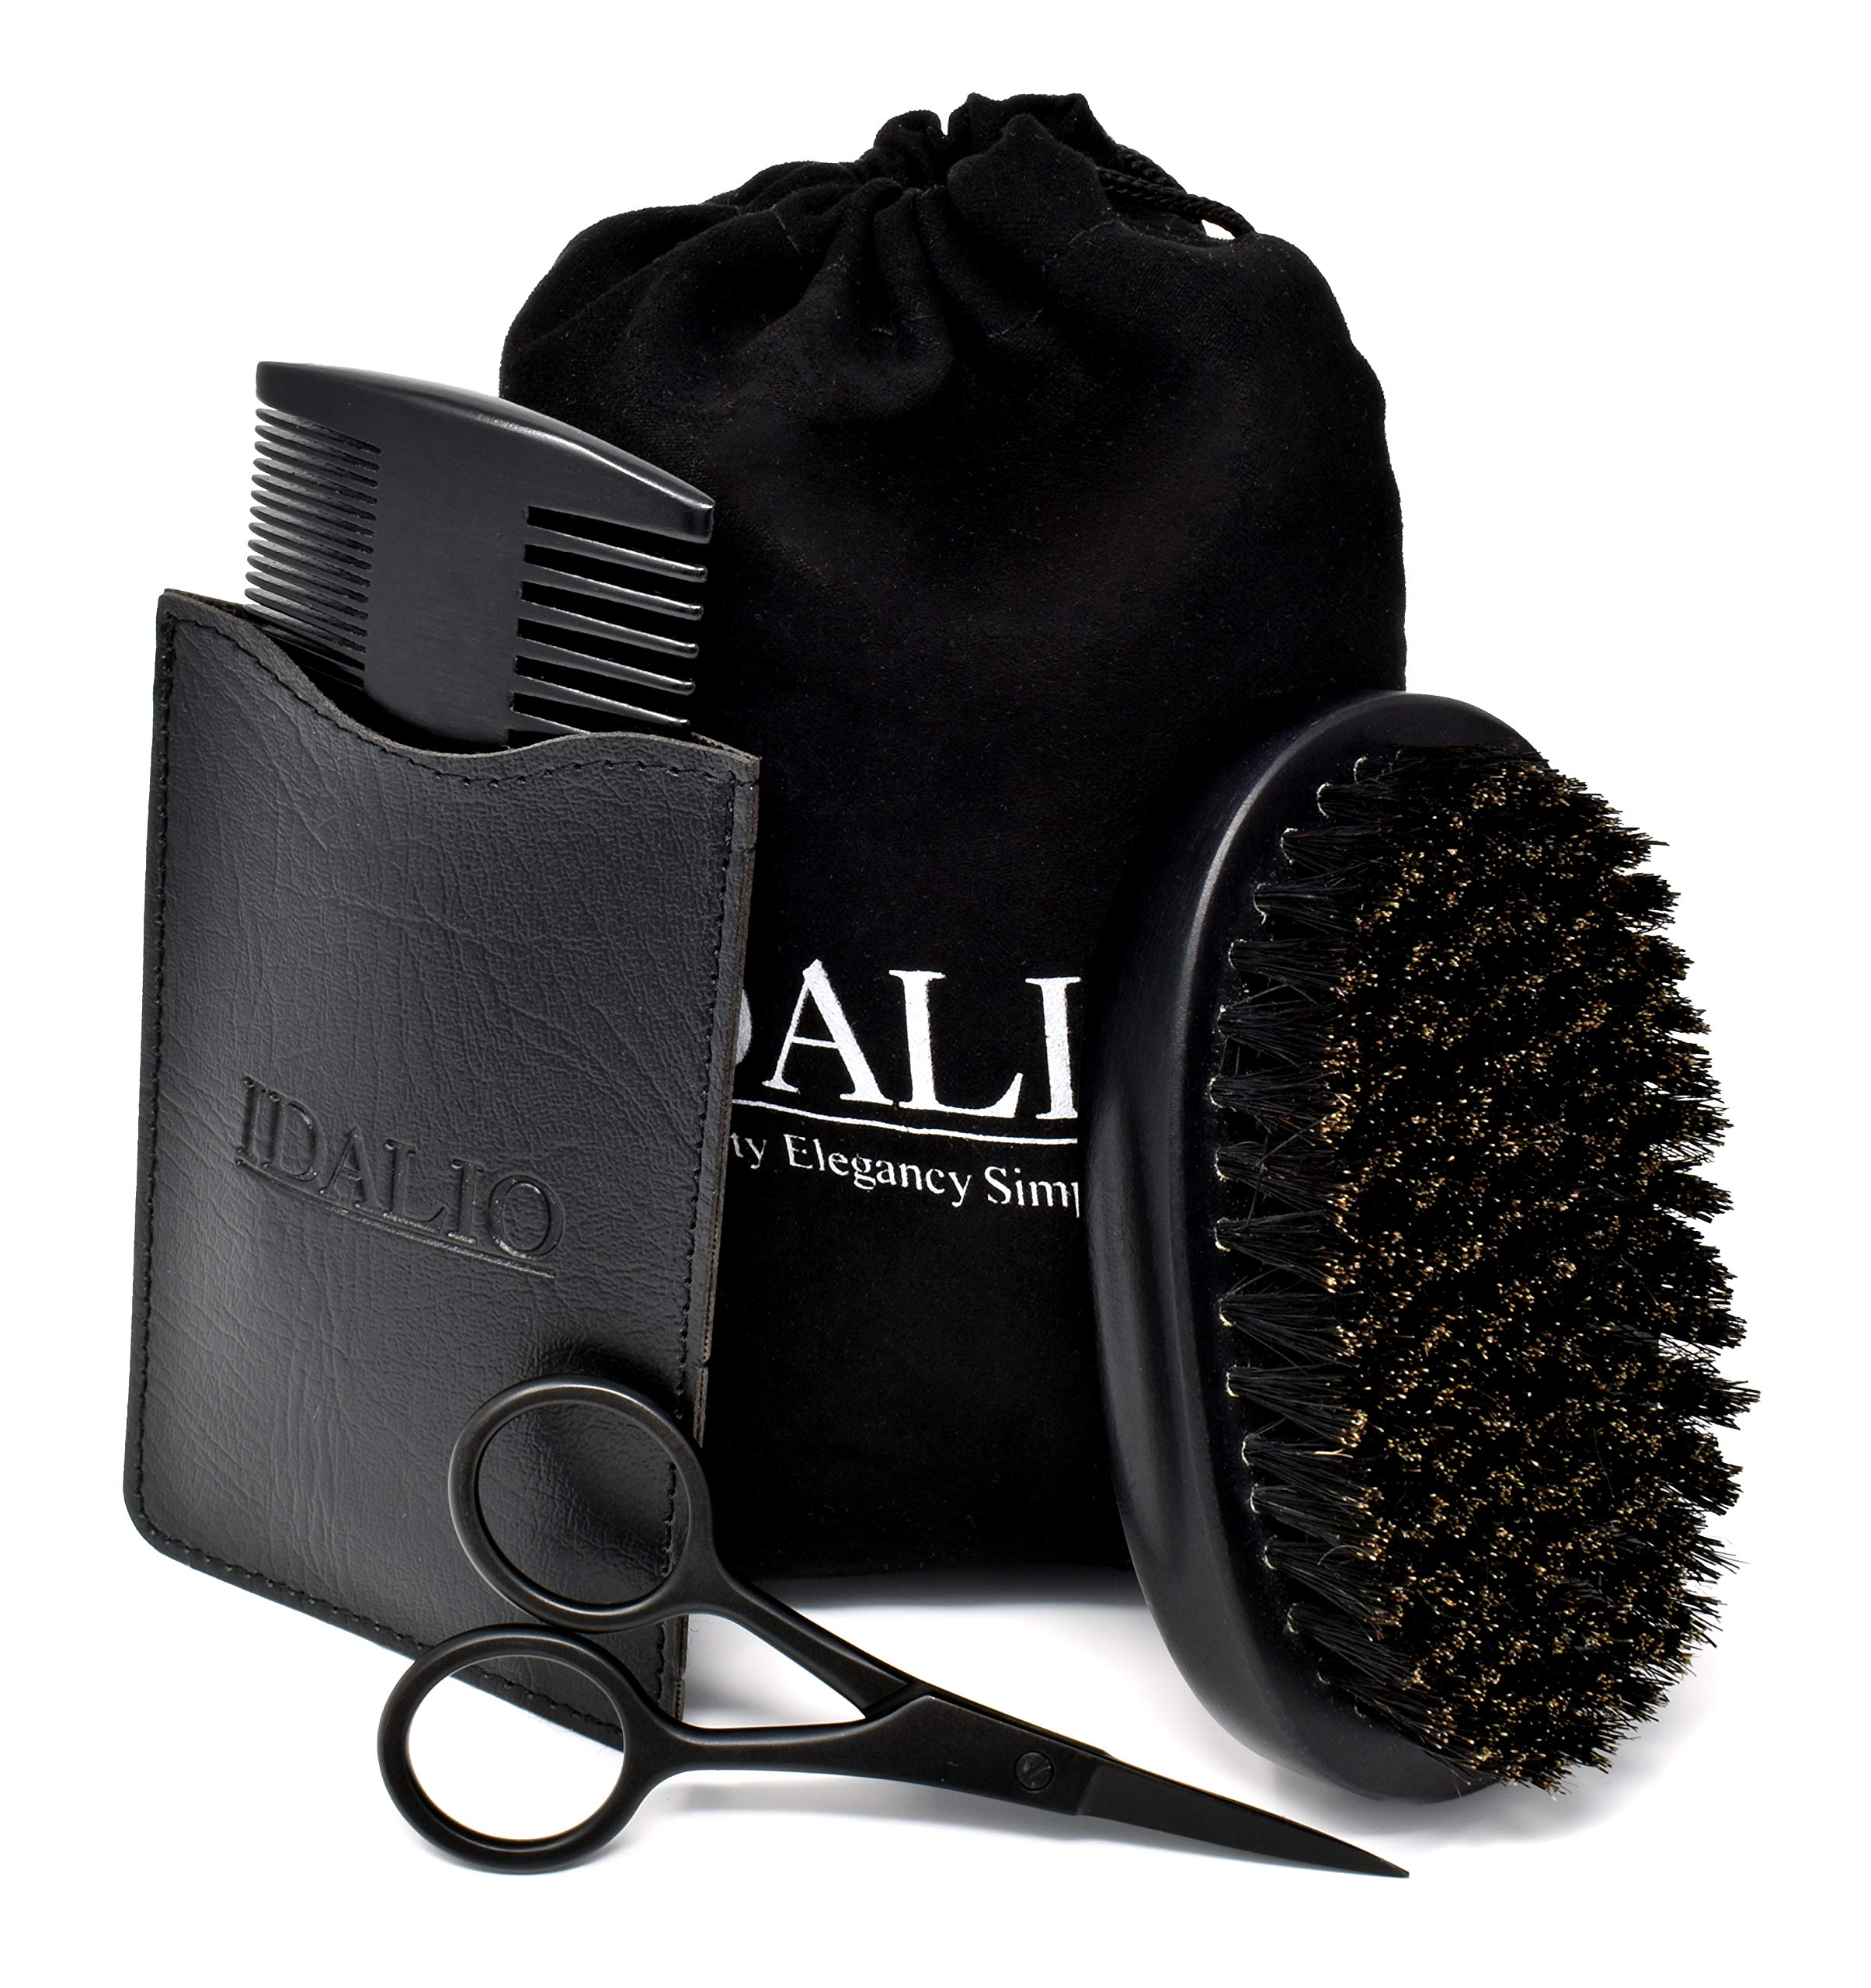 Beard Grooming Kit for Men Care with 100% Boar Bristle Beard Brush, Sandalwood Beard Comb & Stainless Steel Trimming Beard Scissors in Elegant Black Gift Box for Styling and Shaping by IDALIO